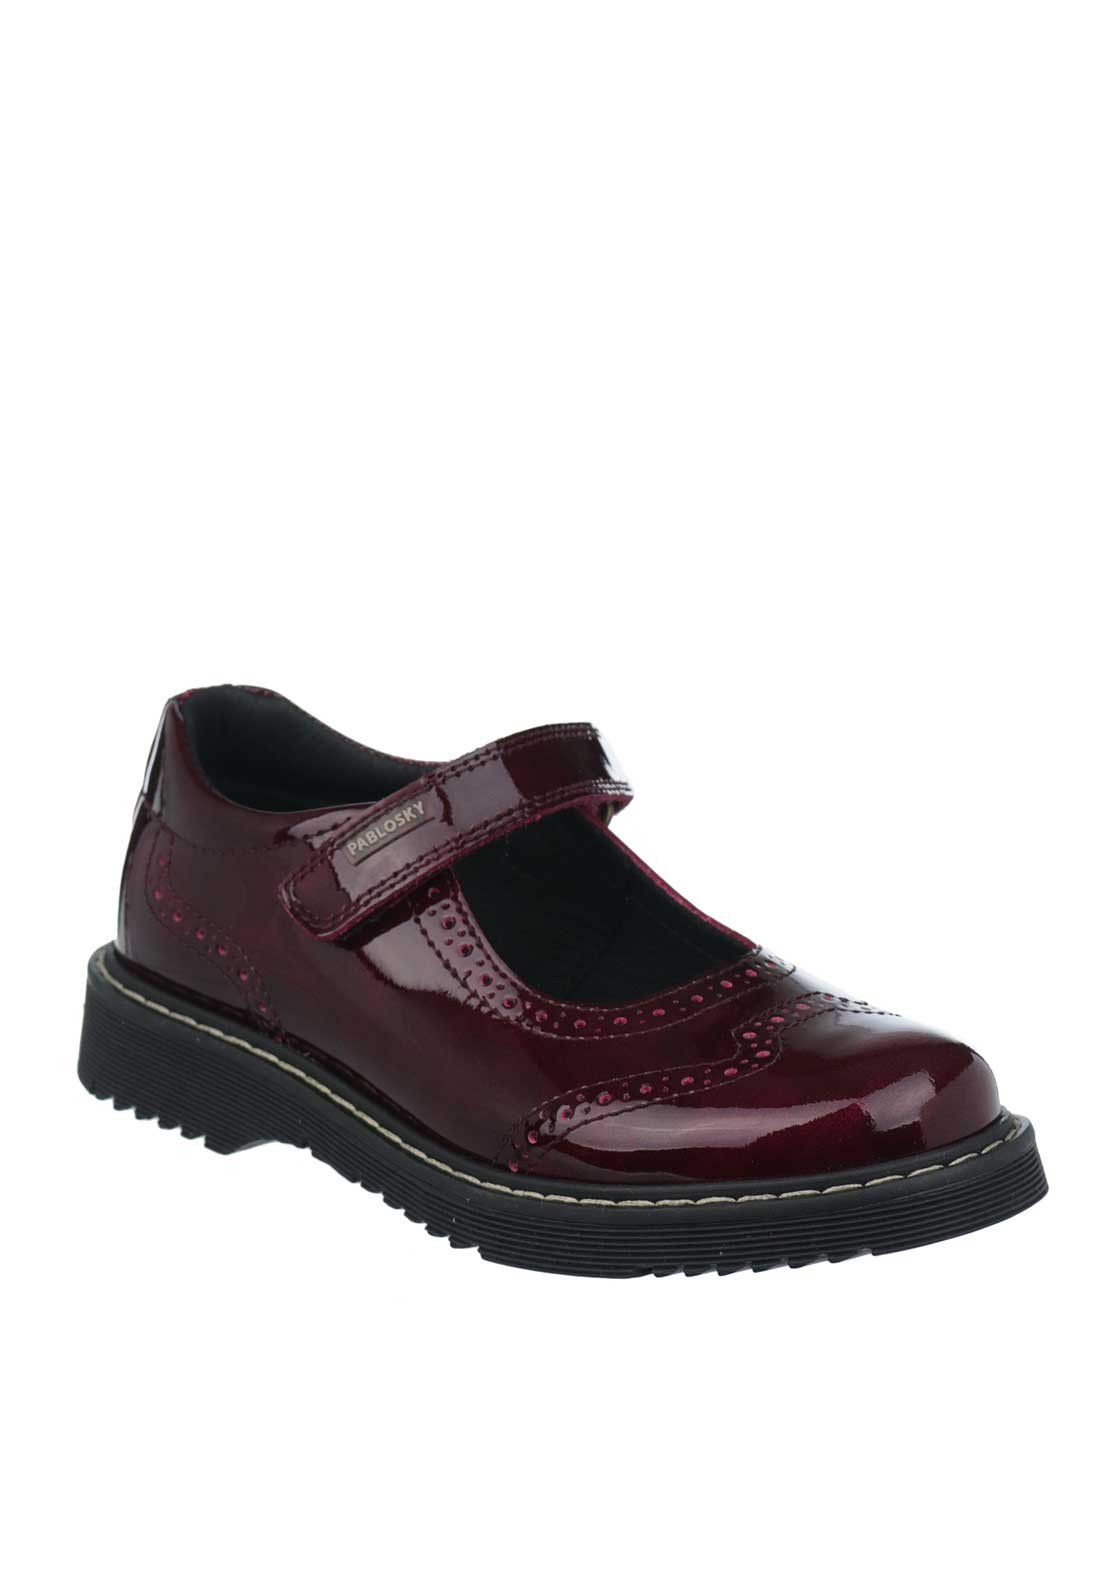 Pablosky Girls Patent Leather Mary Jane School Shoes, Wine